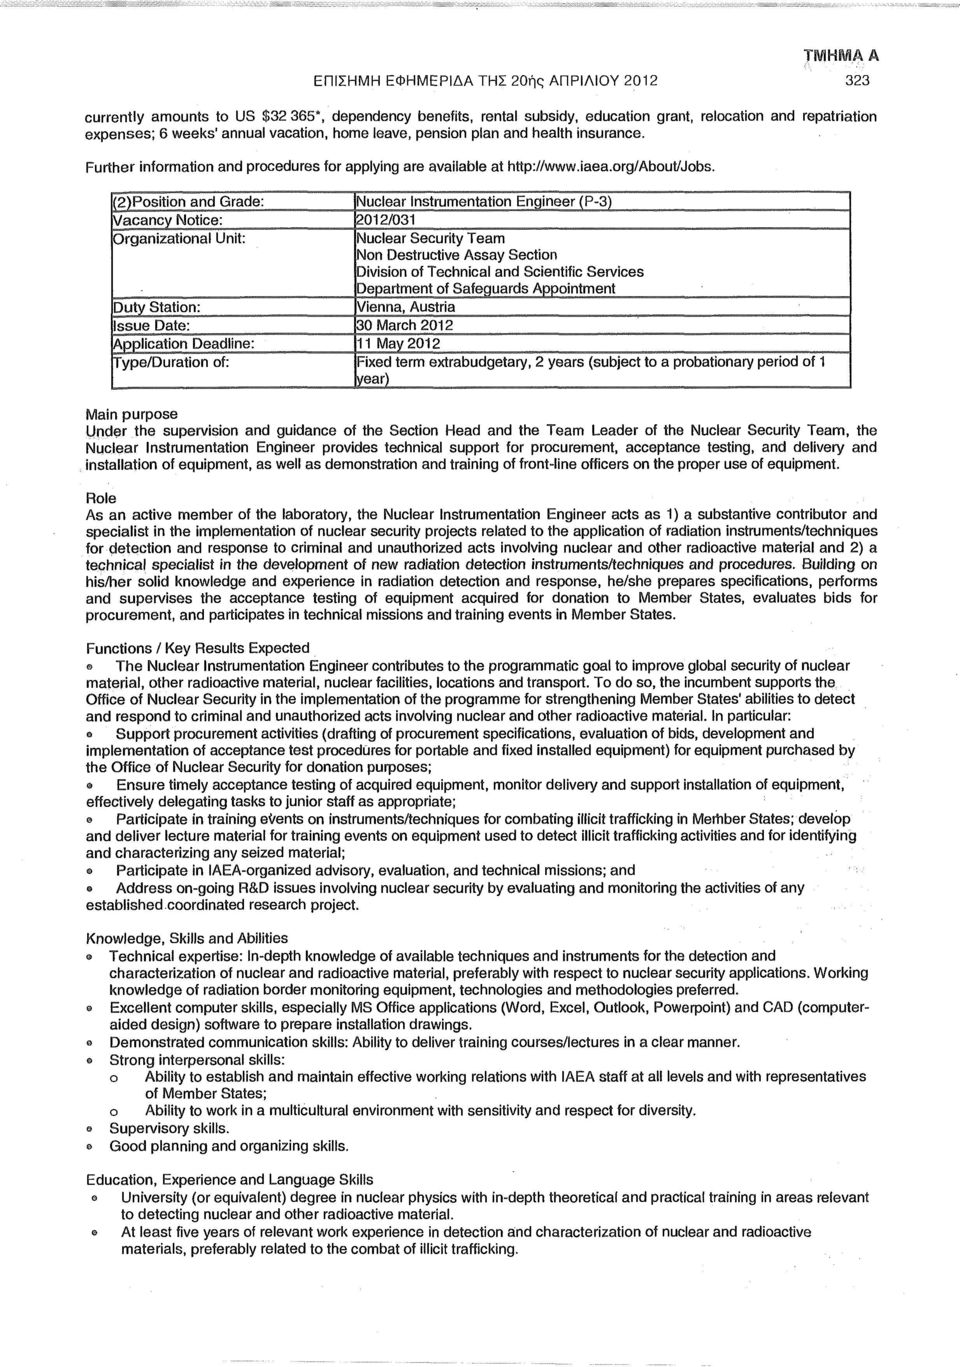 (2)Position and Grade: Nuclear Instrumentation Engineer (P-3) Vacancy Notice: 2012/031 Organizational Unit: Nuclear Security Team Non Destructive Assay Section Division of Technical and Scientific